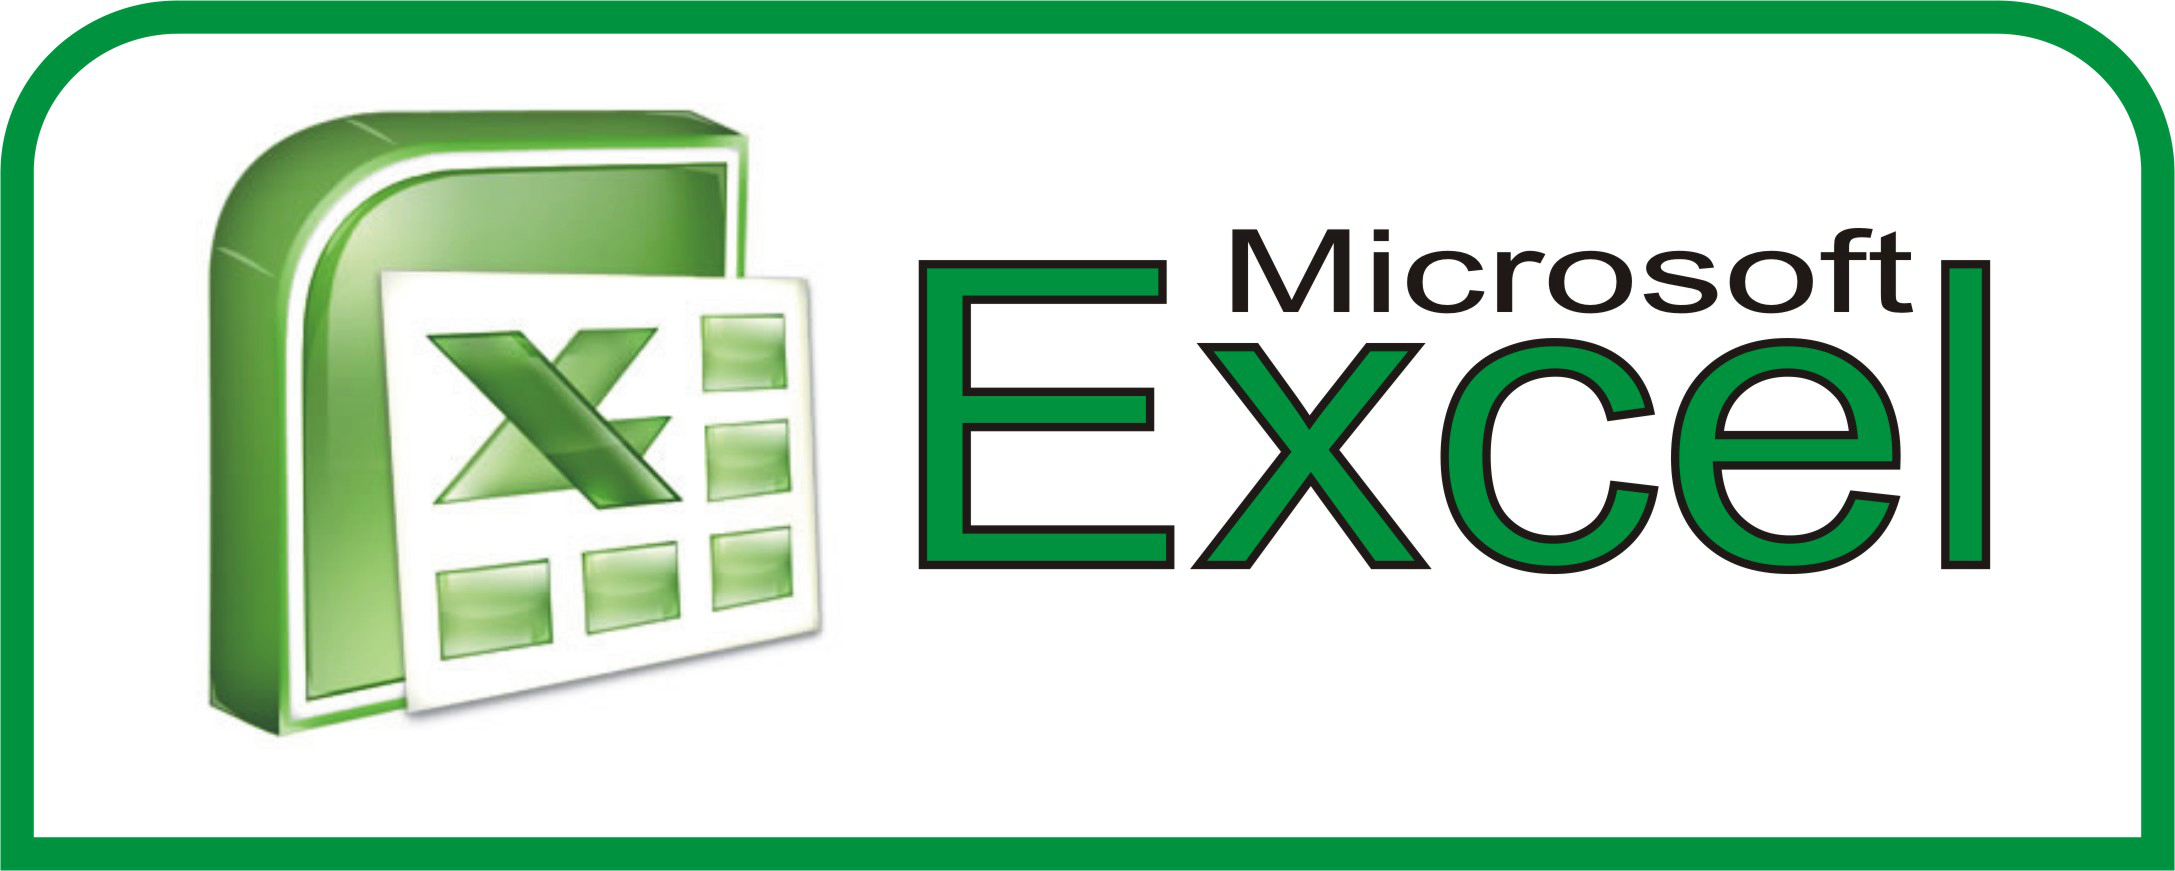 Ediblewildsus  Fascinating  Excel Shortcuts You Probably Didnt Know About  Techdissected With Foxy Excel Macro Range Besides How To Create A Fillable Form In Excel Furthermore Excel Color Cell Based On Value With Attractive Travel Itinerary Template Excel Also Nested If Statement In Excel In Addition If And Formula Excel And Create Excel Spreadsheet As Well As Square Root Function In Excel Additionally Excel  Y Axis From Techdissectedcom With Ediblewildsus  Foxy  Excel Shortcuts You Probably Didnt Know About  Techdissected With Attractive Excel Macro Range Besides How To Create A Fillable Form In Excel Furthermore Excel Color Cell Based On Value And Fascinating Travel Itinerary Template Excel Also Nested If Statement In Excel In Addition If And Formula Excel From Techdissectedcom